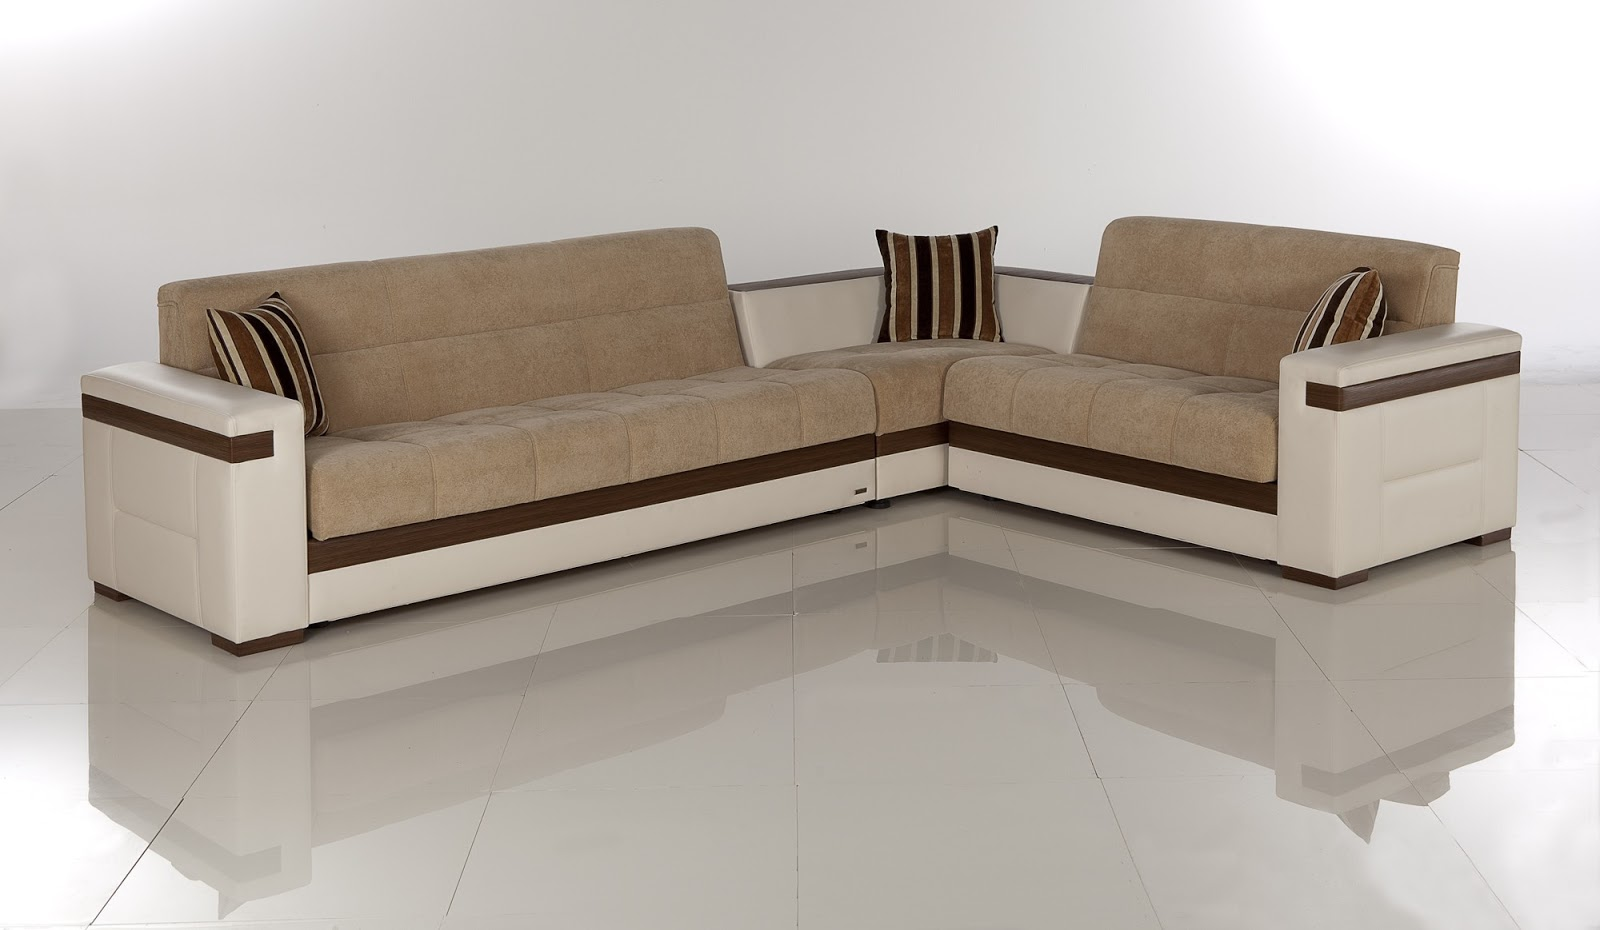 Designer Couch Sofa Designs Ideas Home And Design